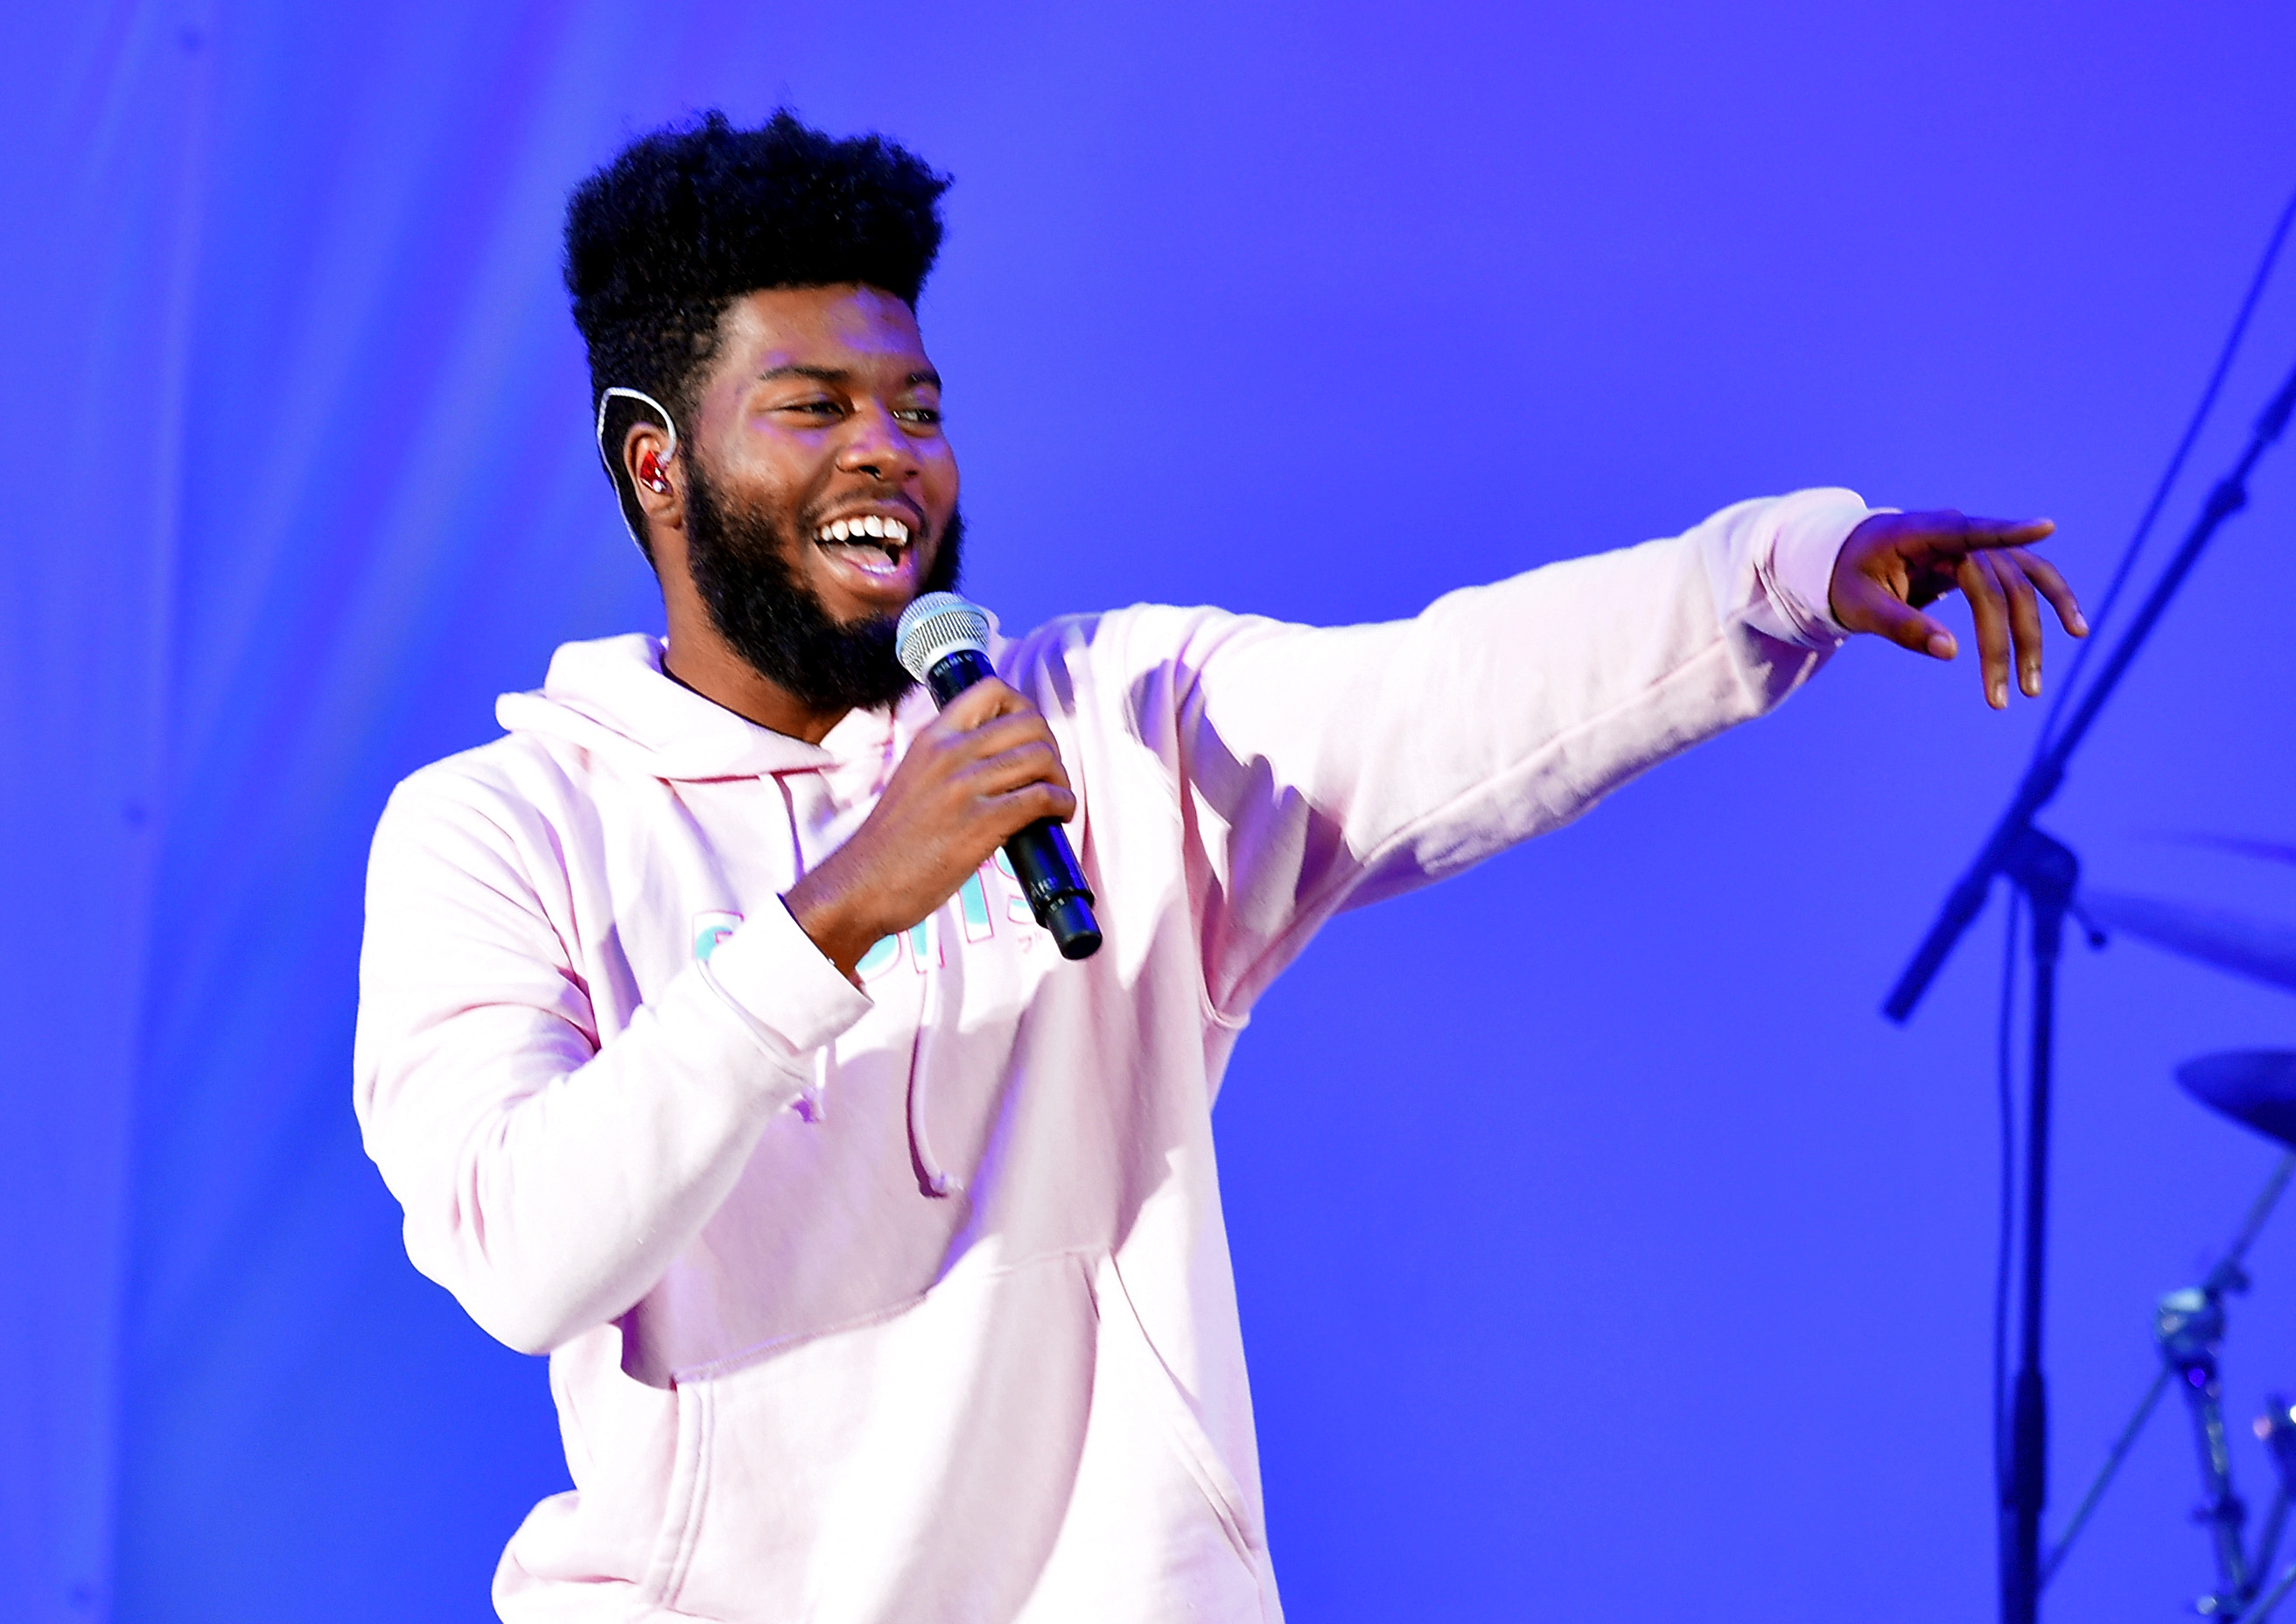 LOS ANGELES, CA - OCTOBER 21: Khalid performs onstage at CBS RADIO's We Can Survive 2017 at The Hollywood Bowl on October 21, 2017 in Los Angeles, California. (Photo by Kevin Winter/Getty Images for CBS RADIO)